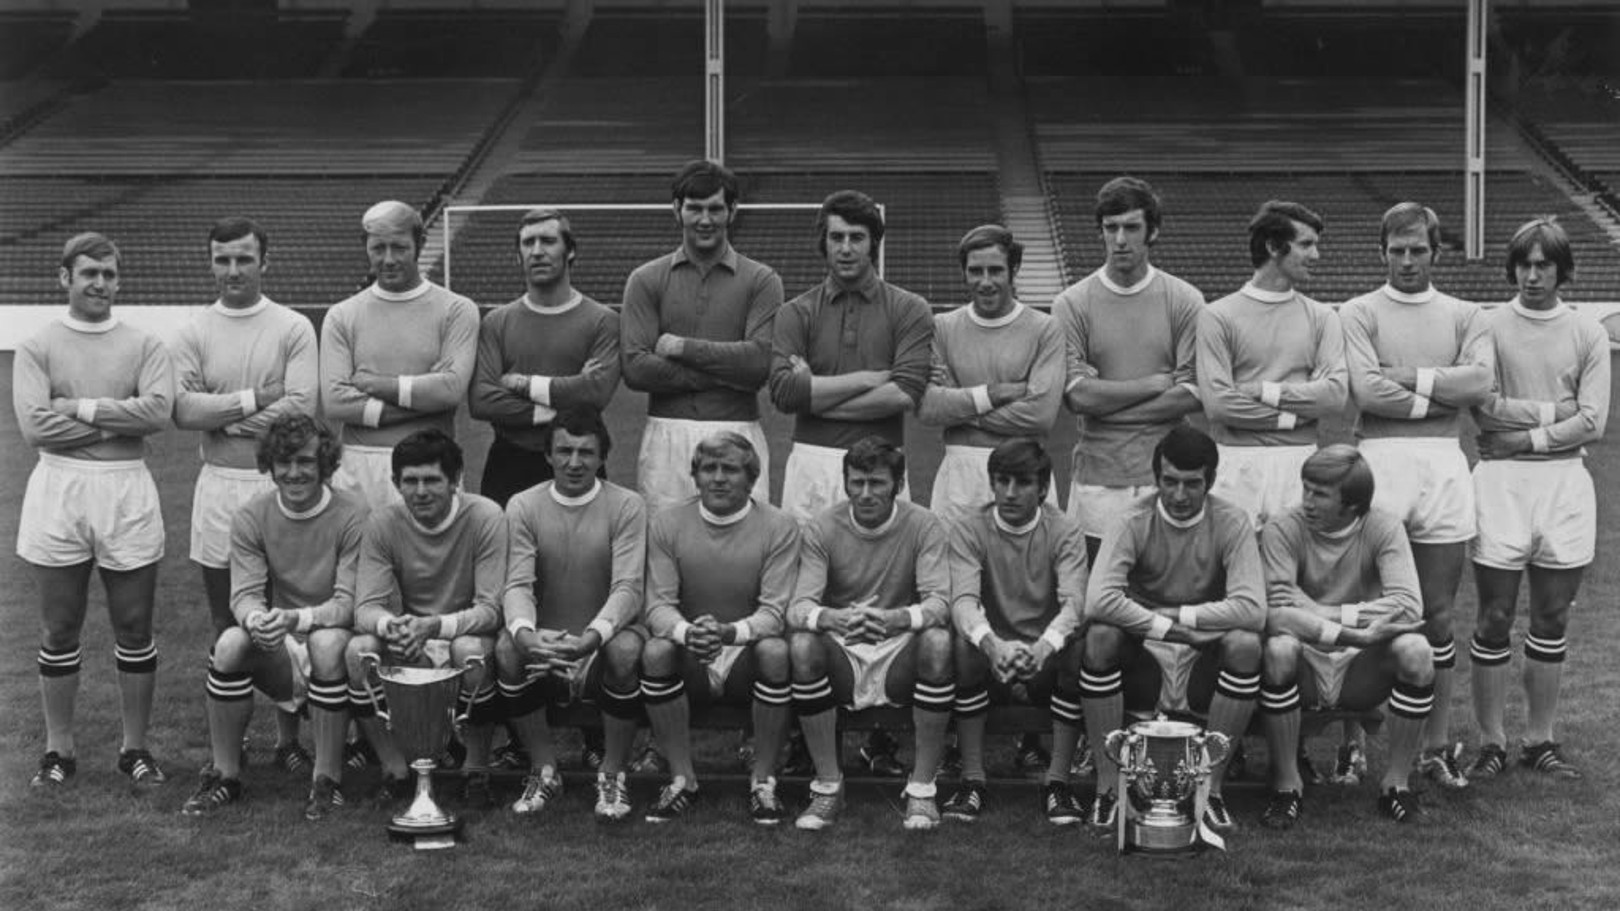 League Cup squad trophy 1969/70